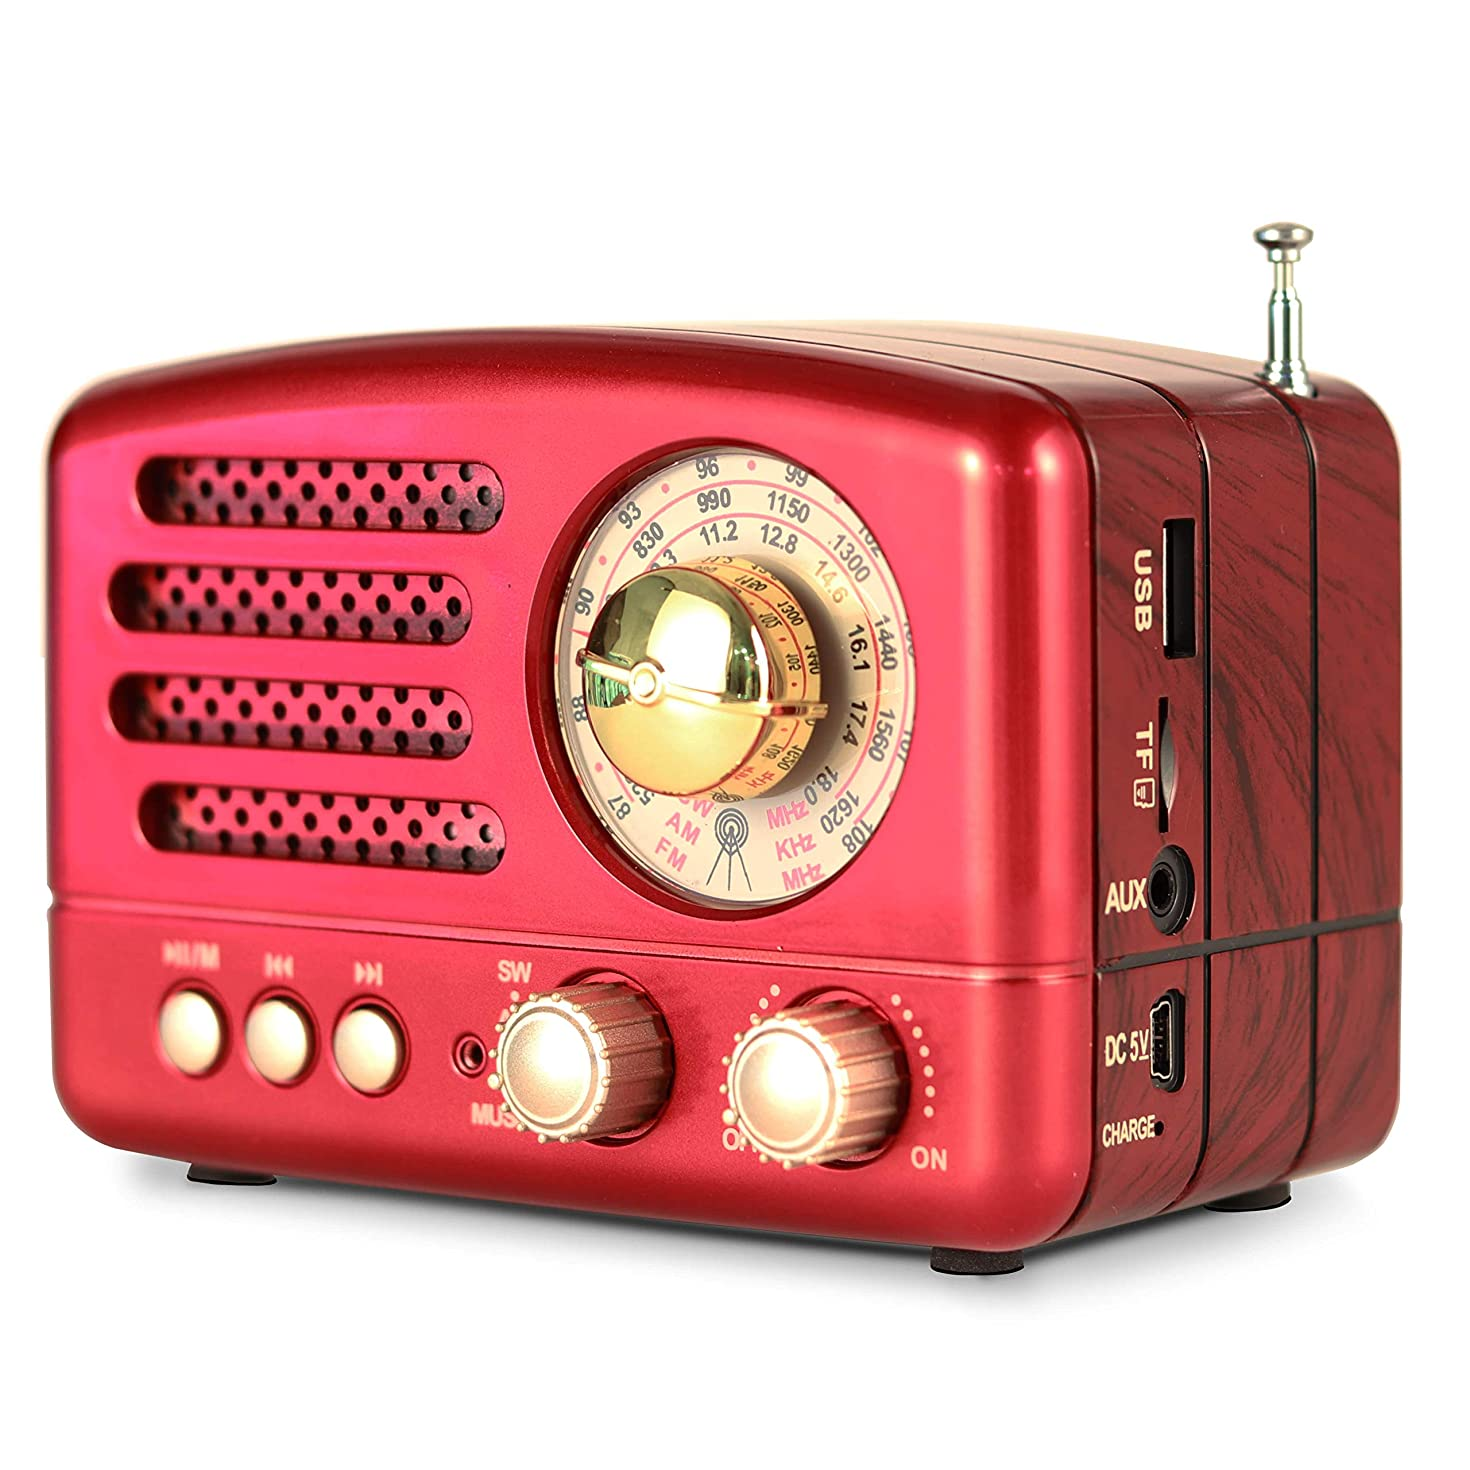 PRUNUS M-160BT Retro Bluetooth Speaker Portable AM/FM/Shortwave Rechargeable Radio, Supports TF Card/Aux/USB MP3 Player(Red)